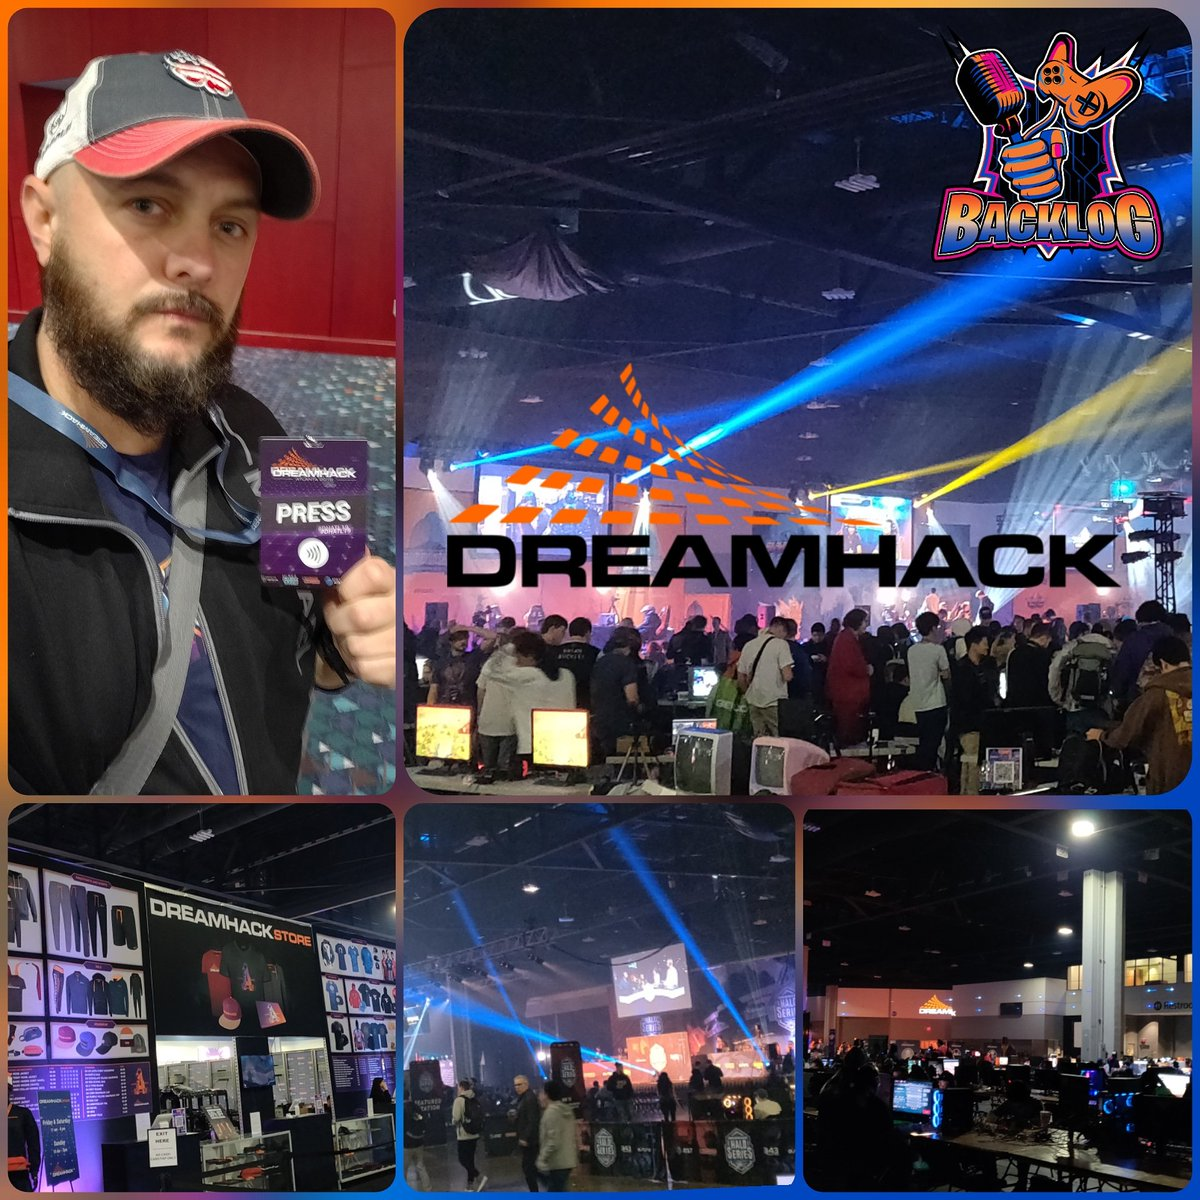 Day 1 #dreamhack #atlanta - pretty impressive spread. Got 3d mapped by AT&T and found out Geico has a gaming division. Finally met up with @Icychiller54 at the @Dreamhack @halo series